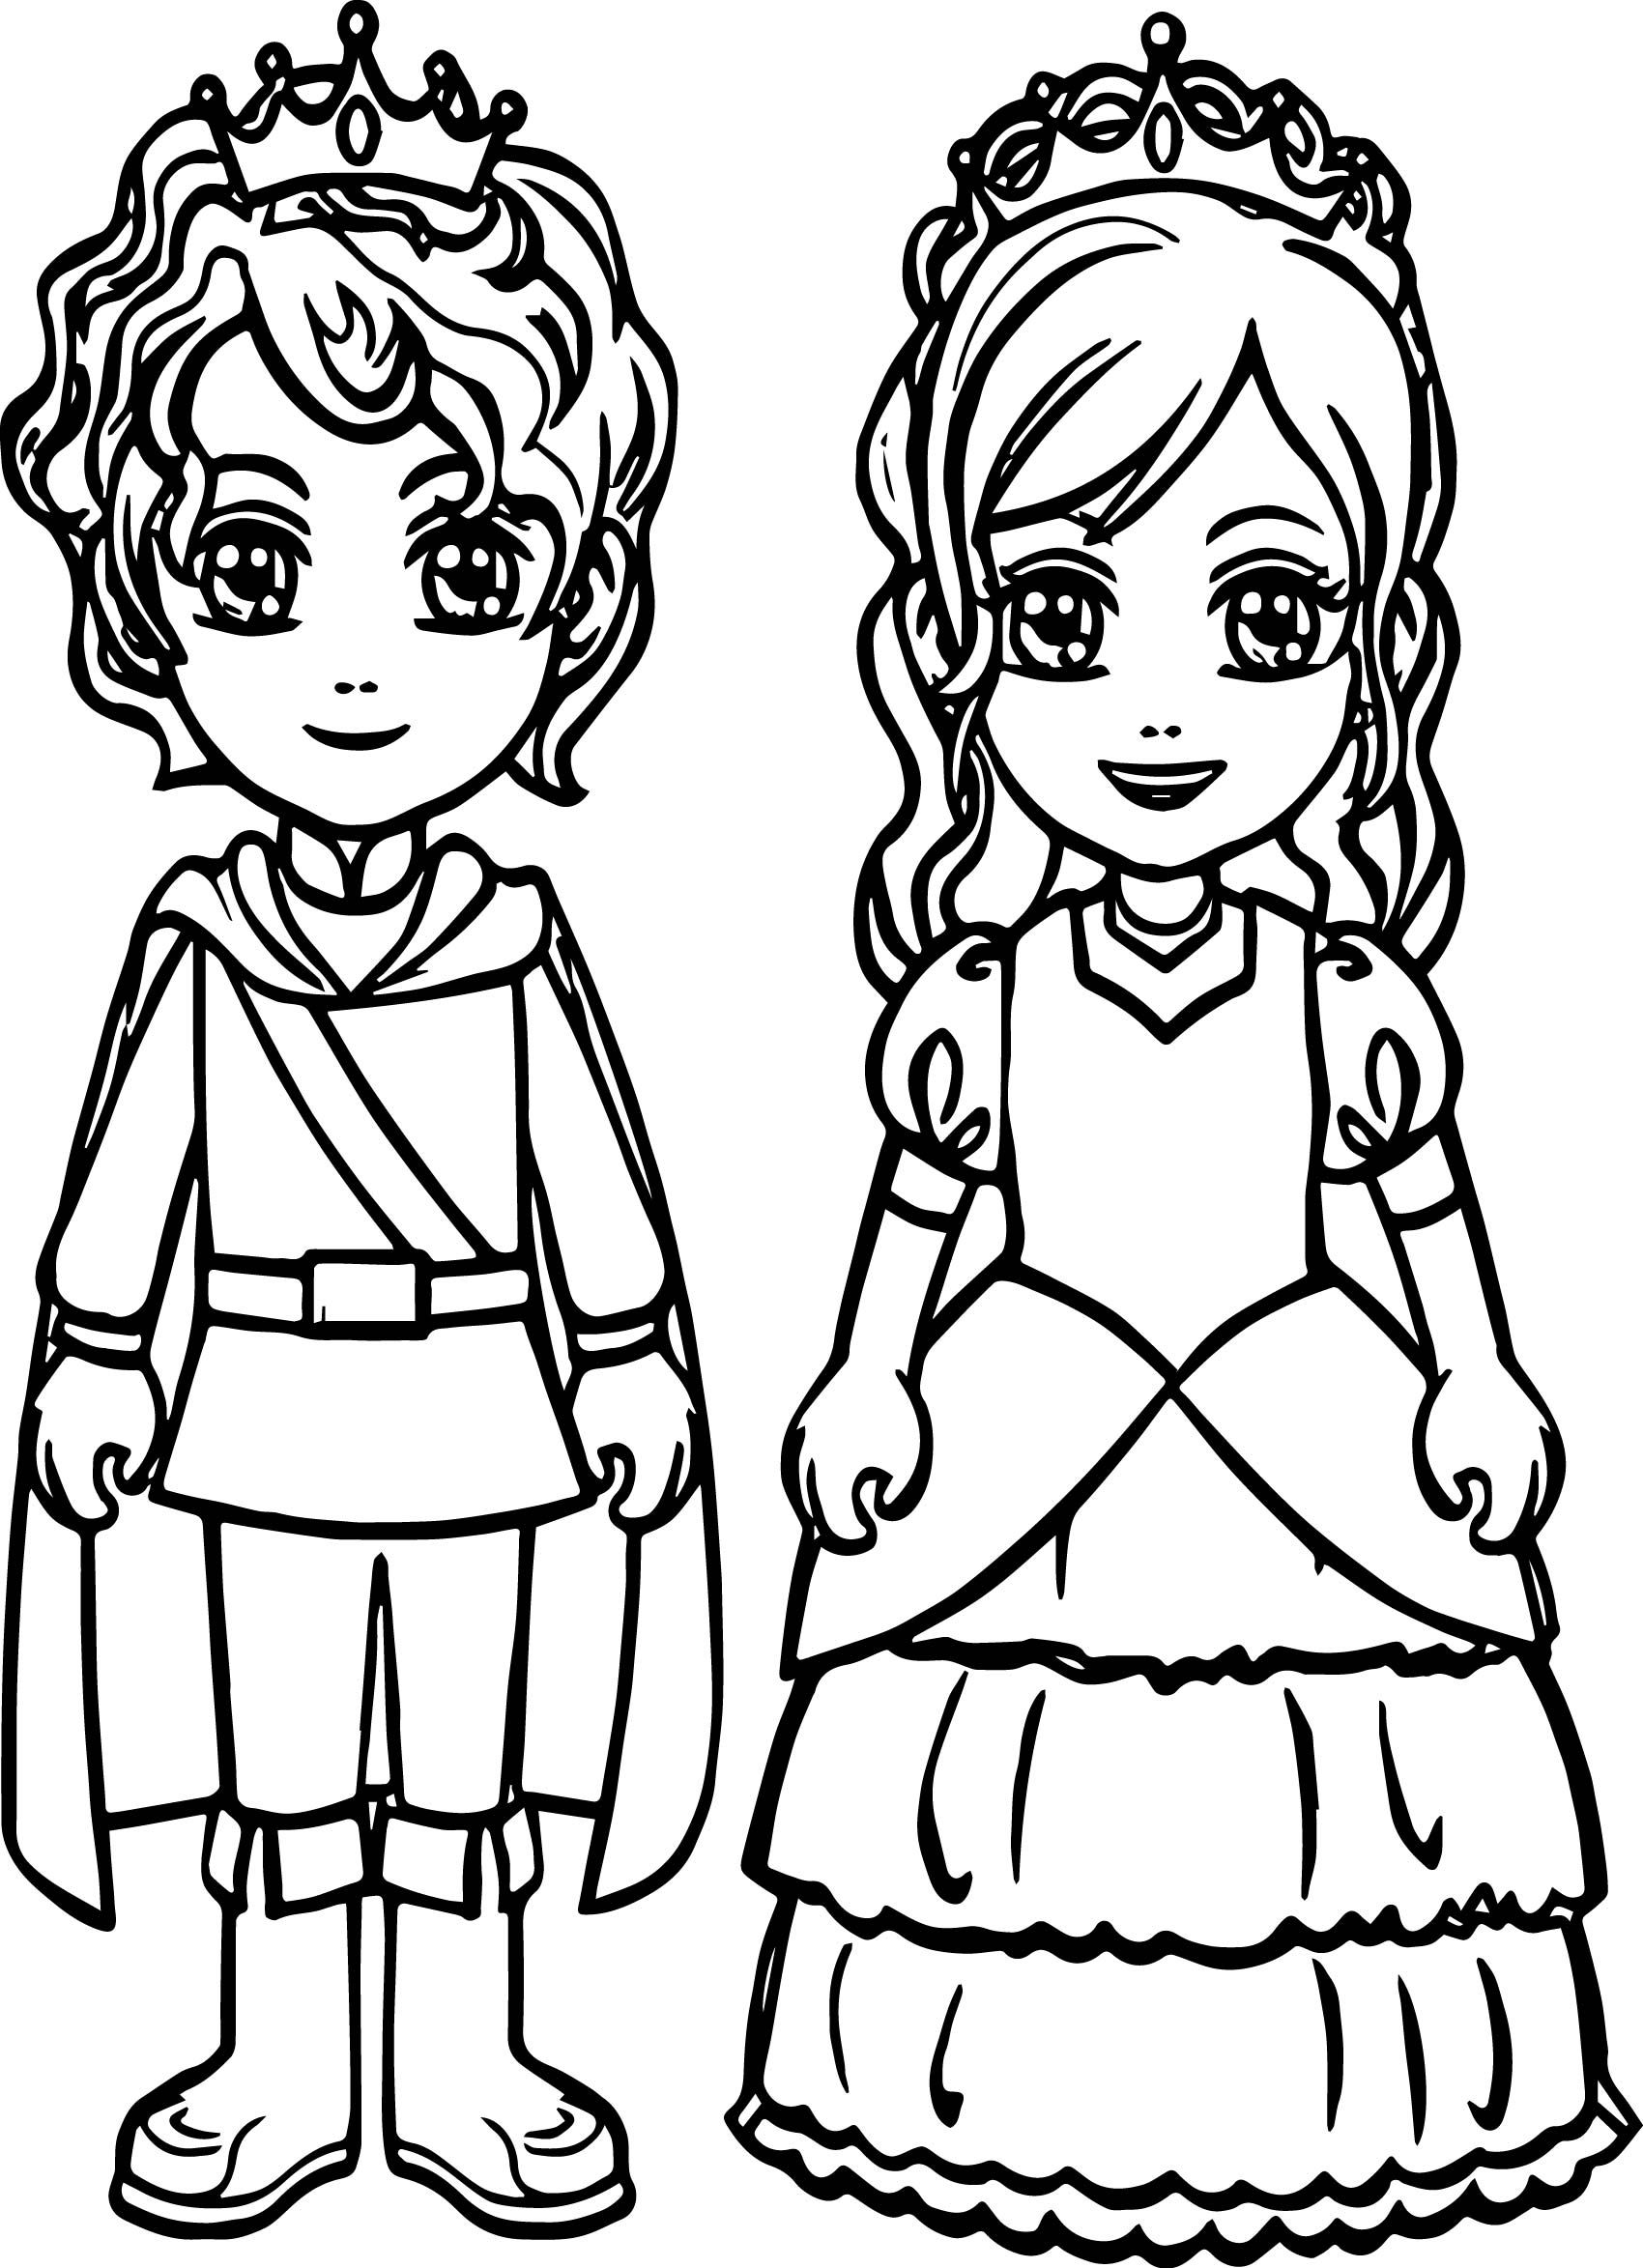 Awesome Boy Prince Girl Princess Coloring Page Princess Coloring Pages Princess Coloring Princess Coloring Sheets